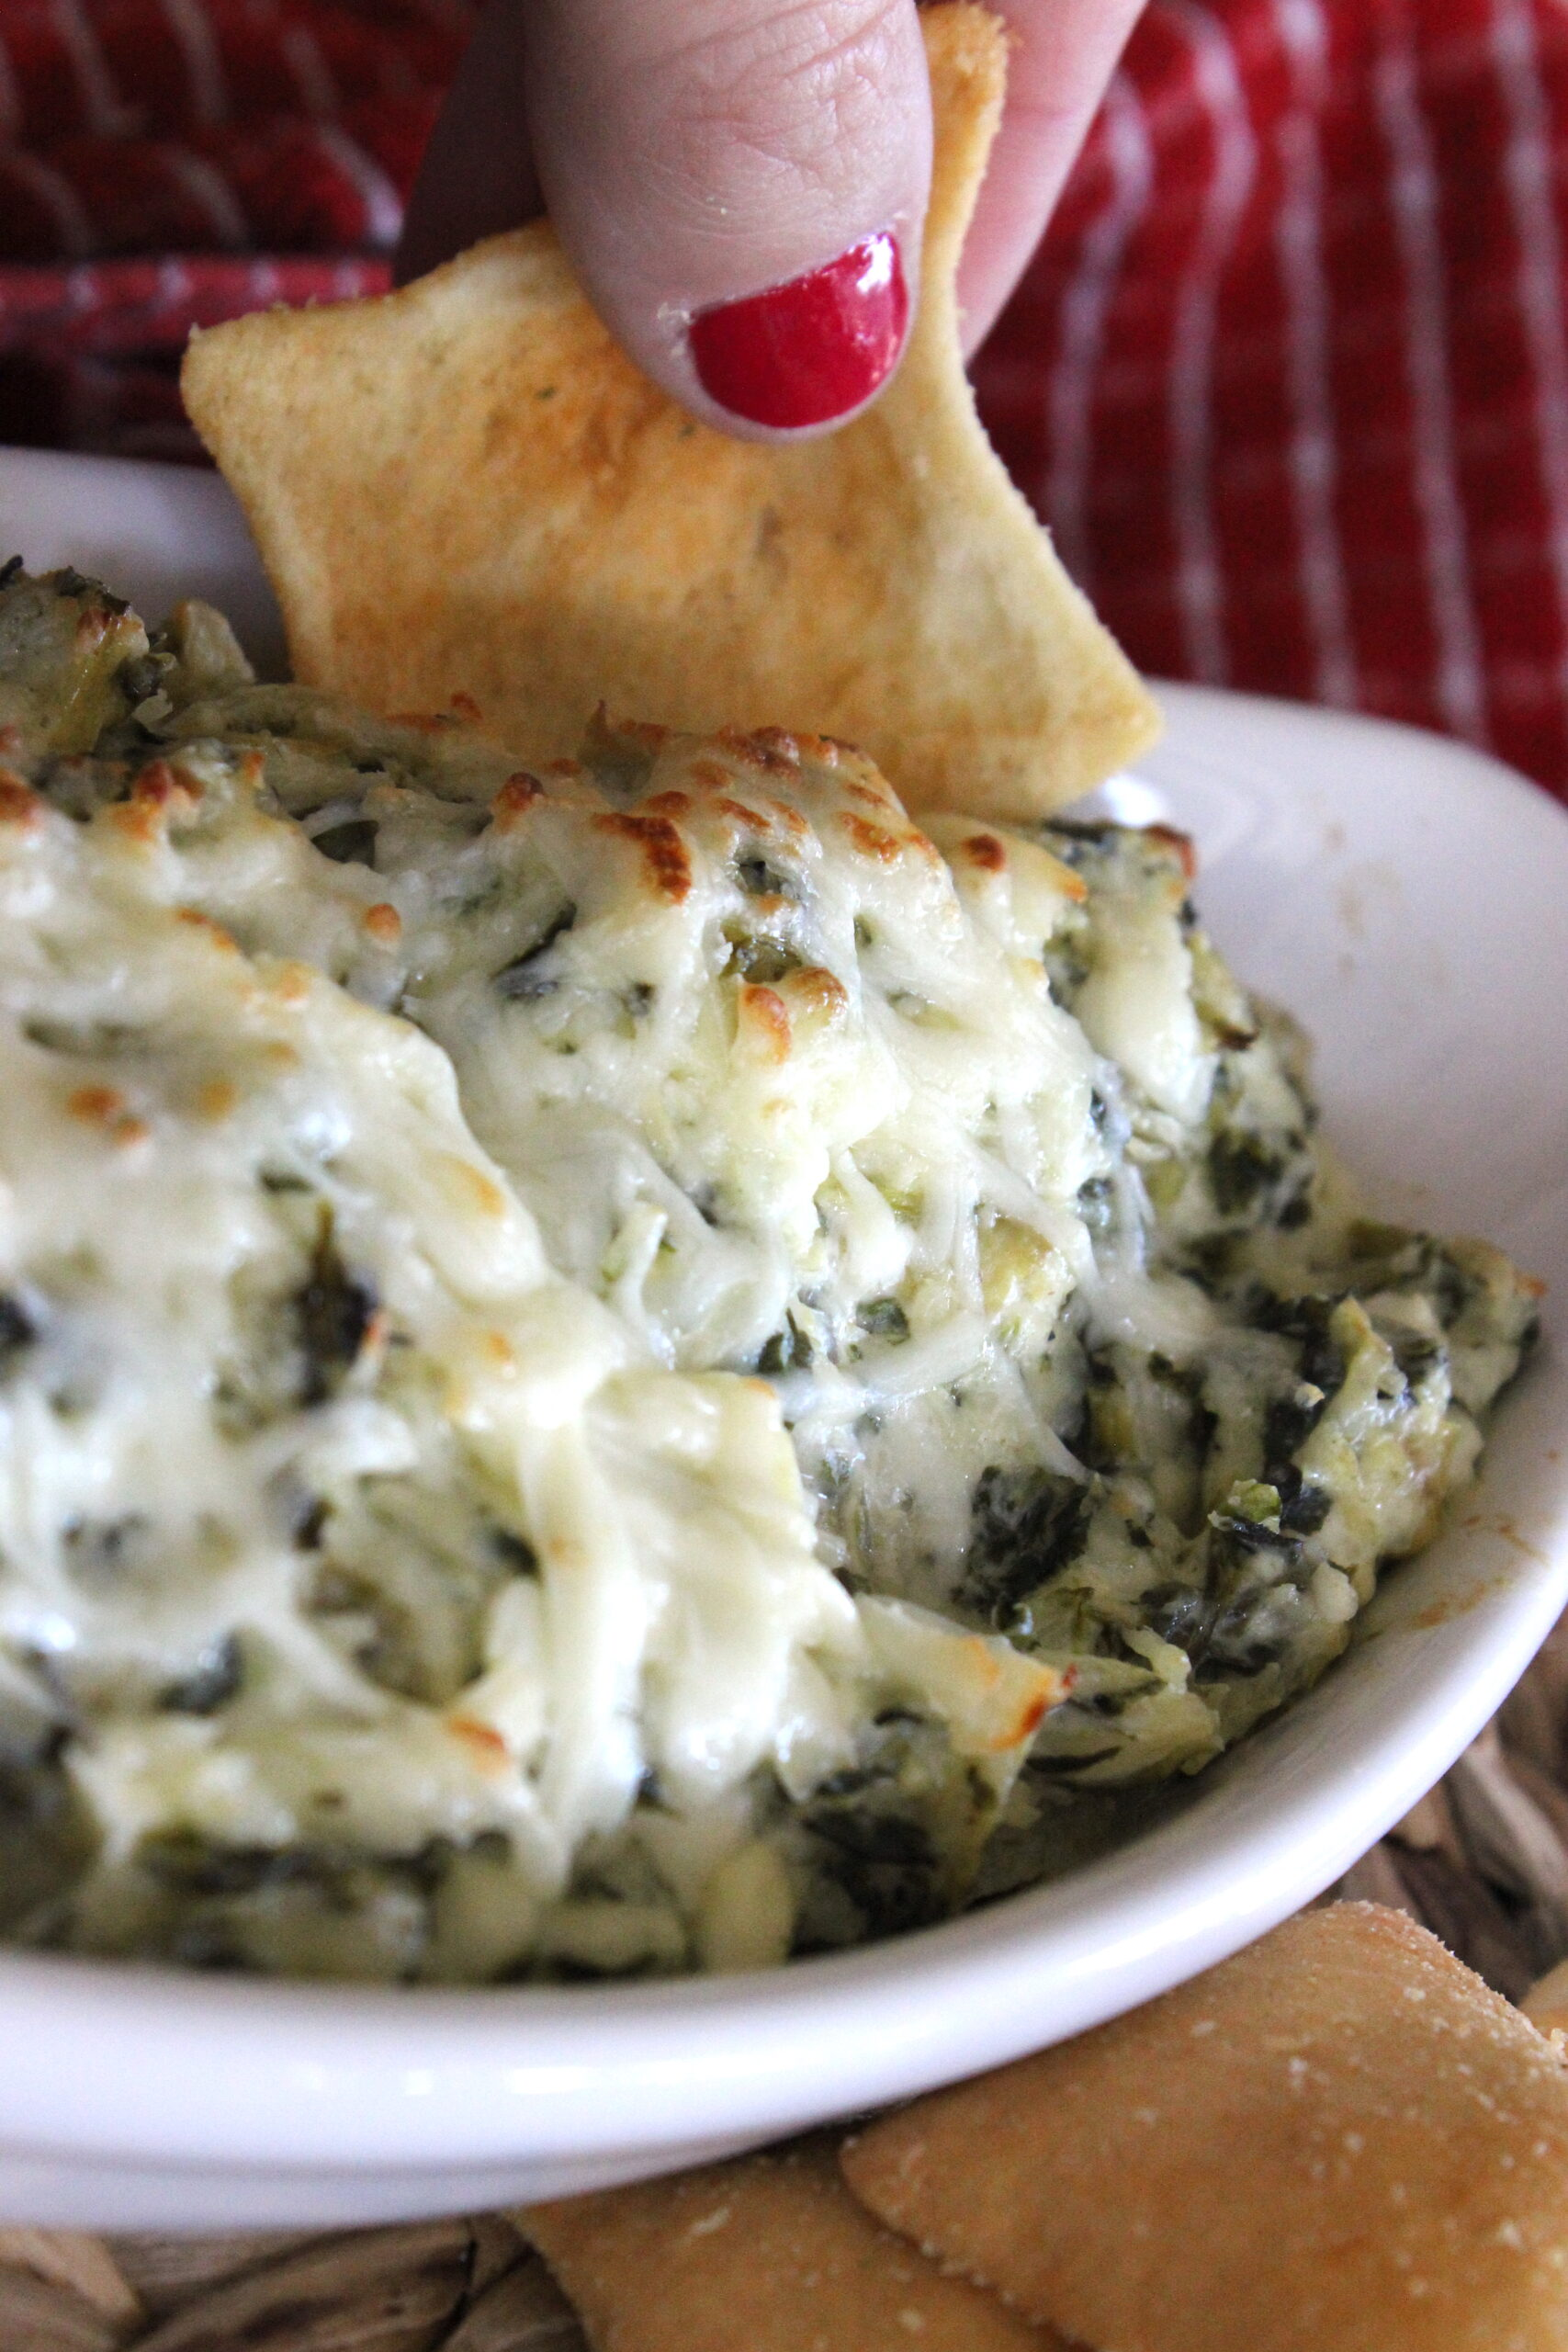 mozzarella cheese on top of spinach and artichoke dip on a pita chip